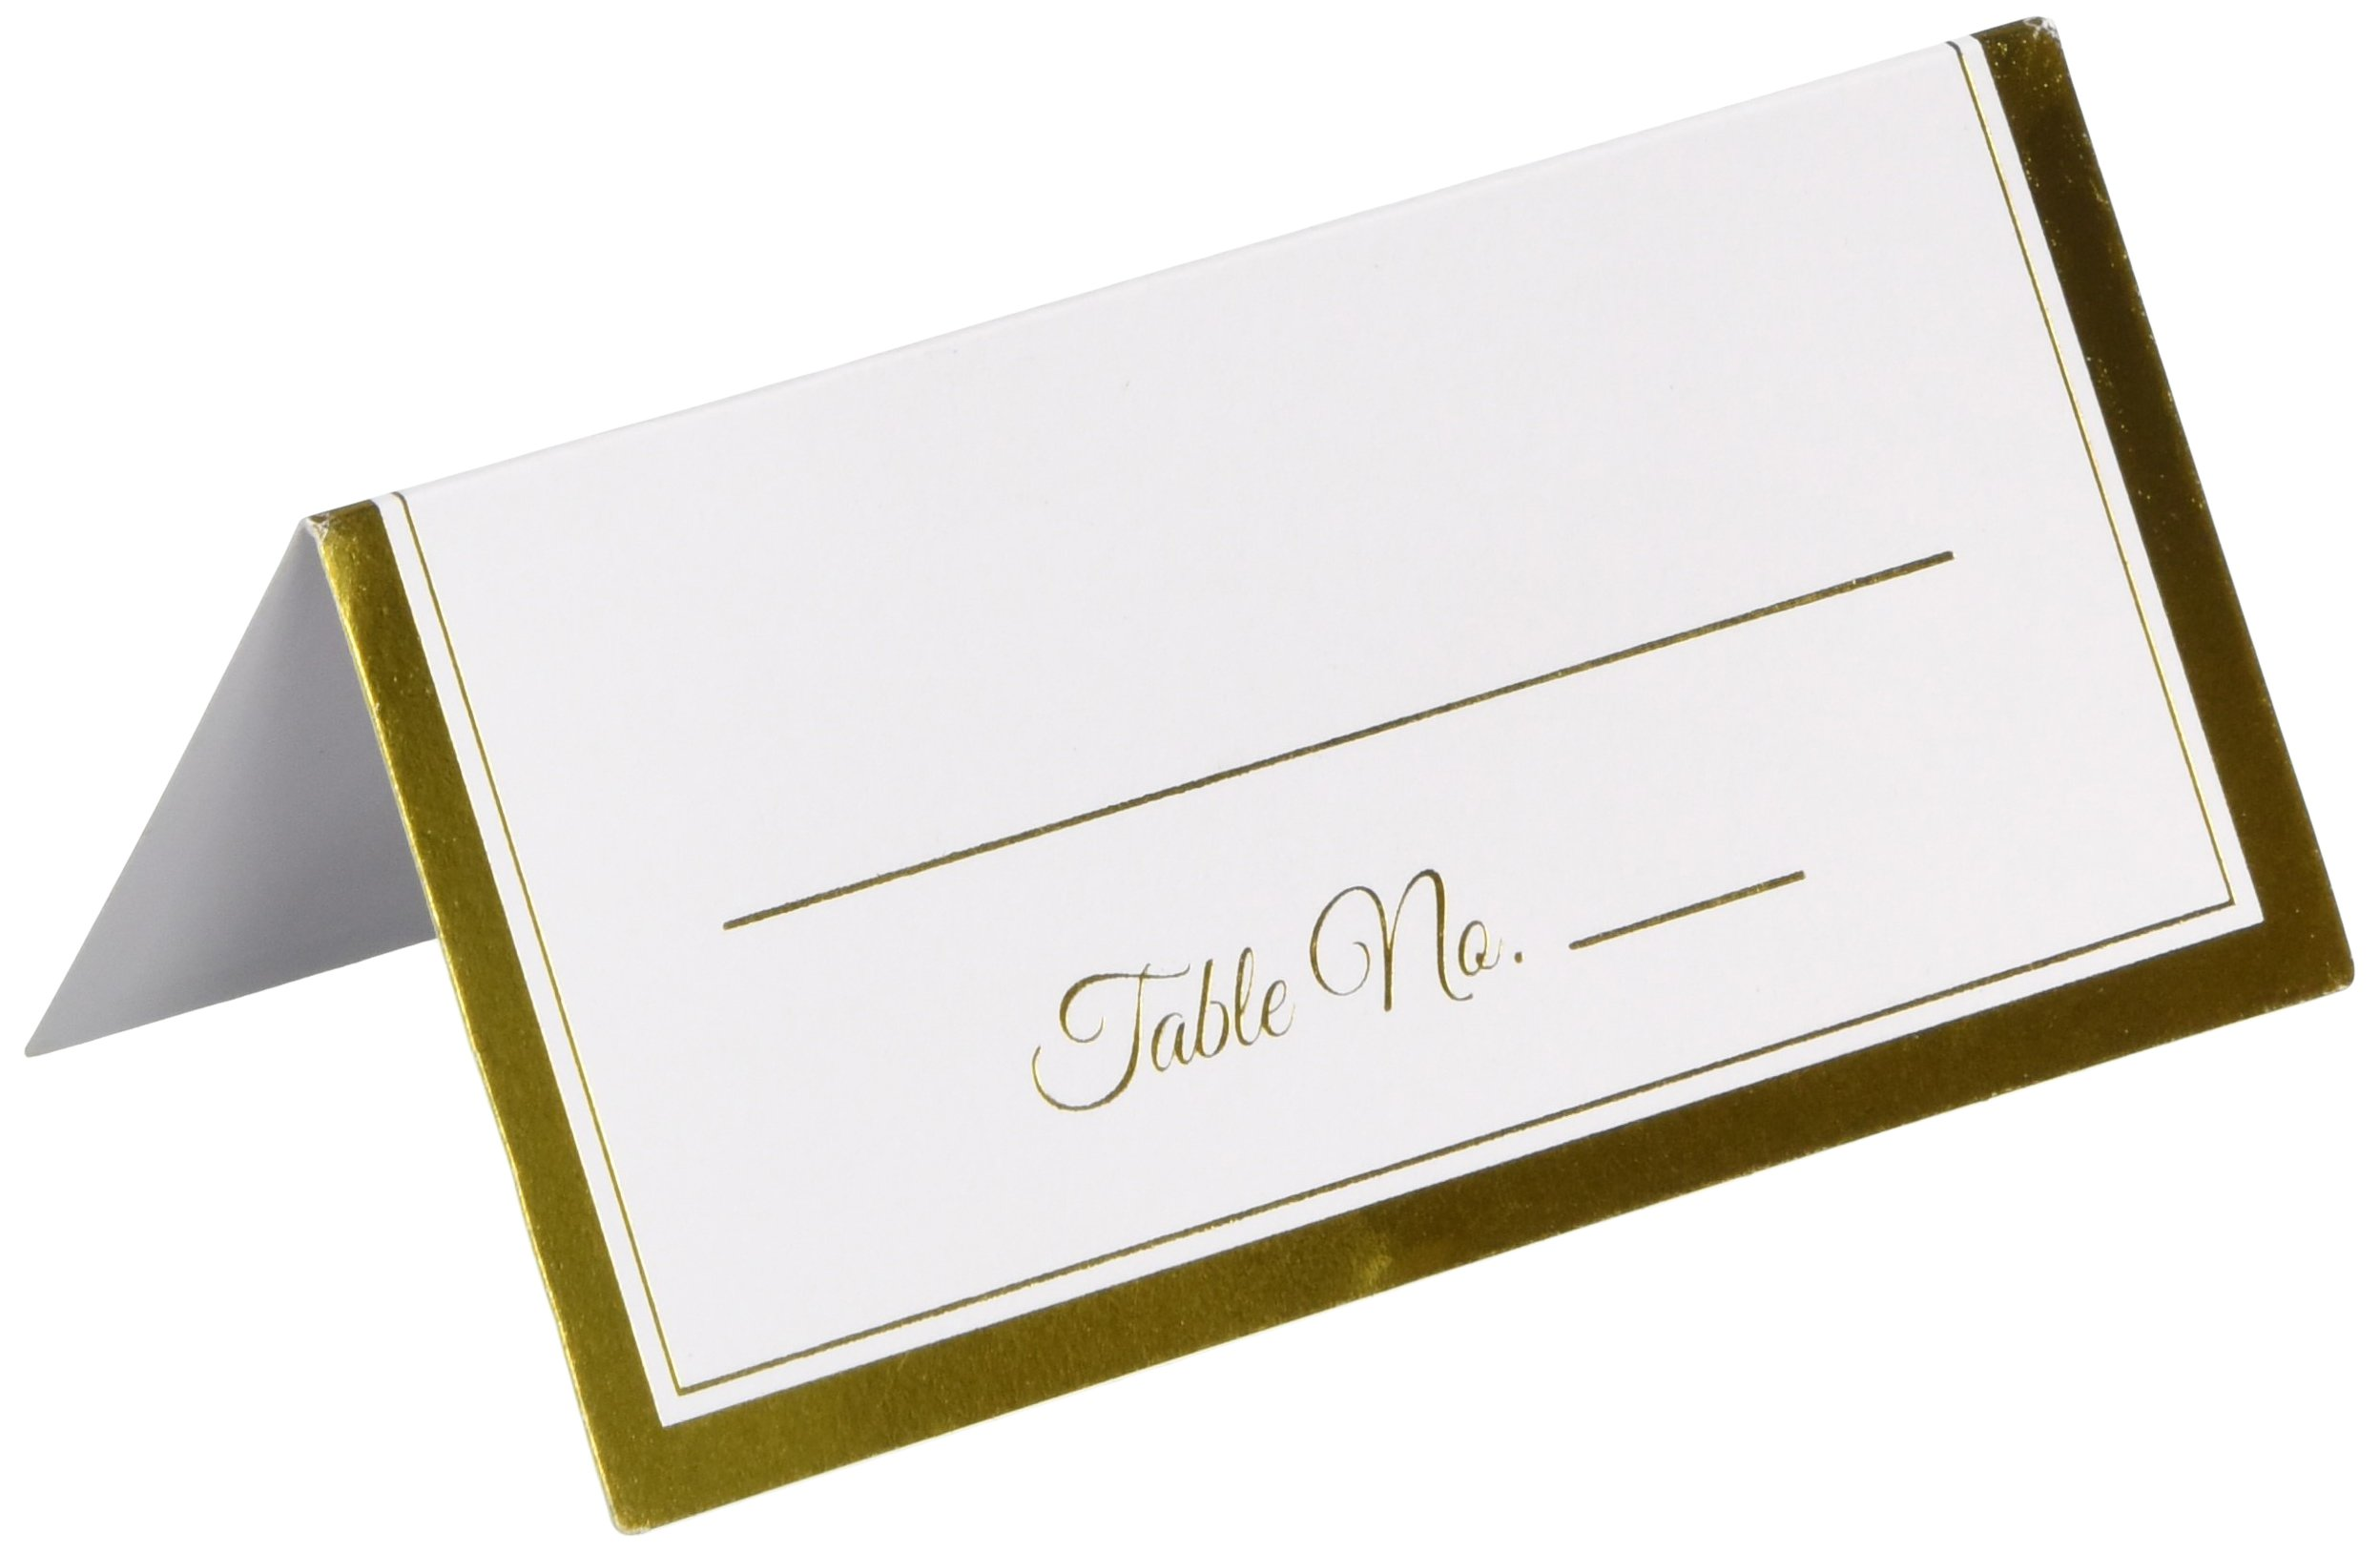 Amscan Durable Party Friendly Place Card with Gold Trim Tableware (600 Piece) by Amscan